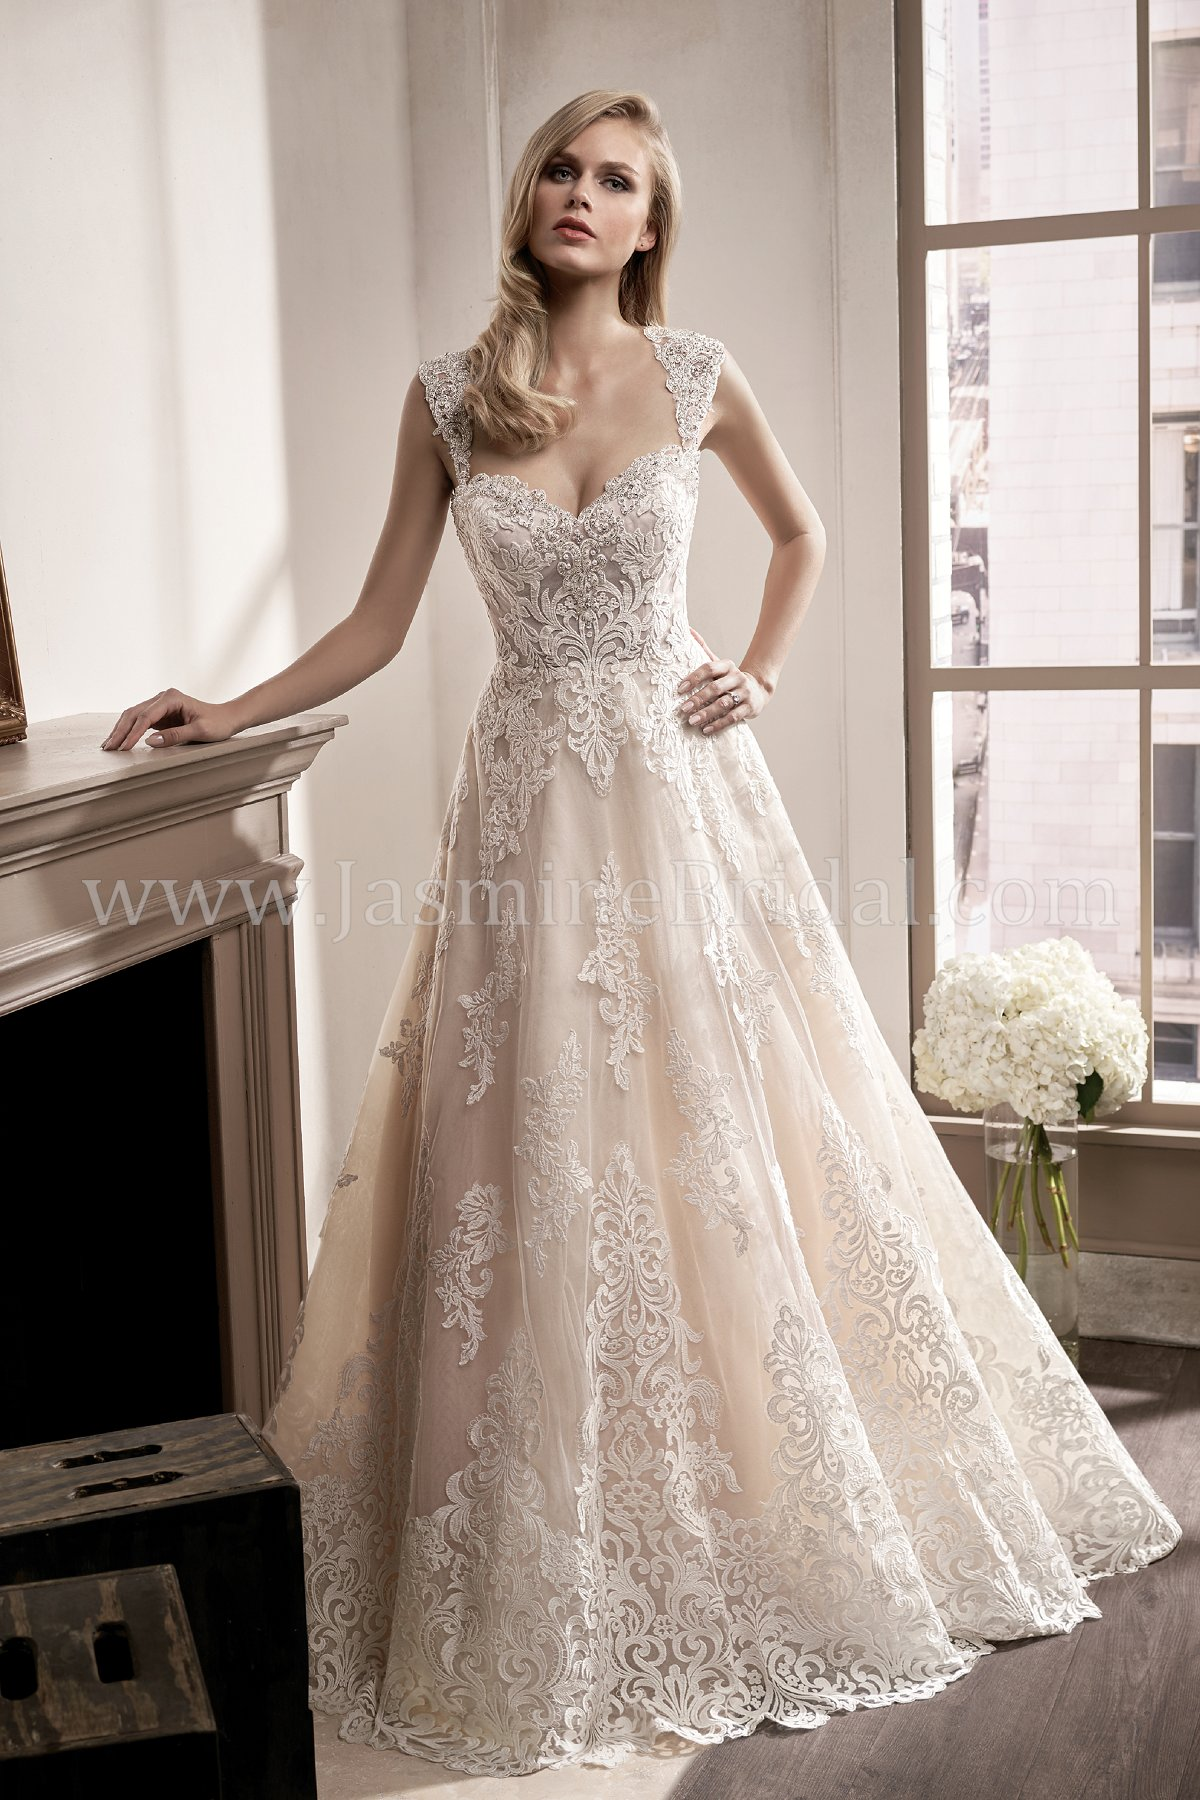 T192016 Illusion Bodice Sweetheart Neckline Organza Tulle Wedding Dress With Embroidery Lace